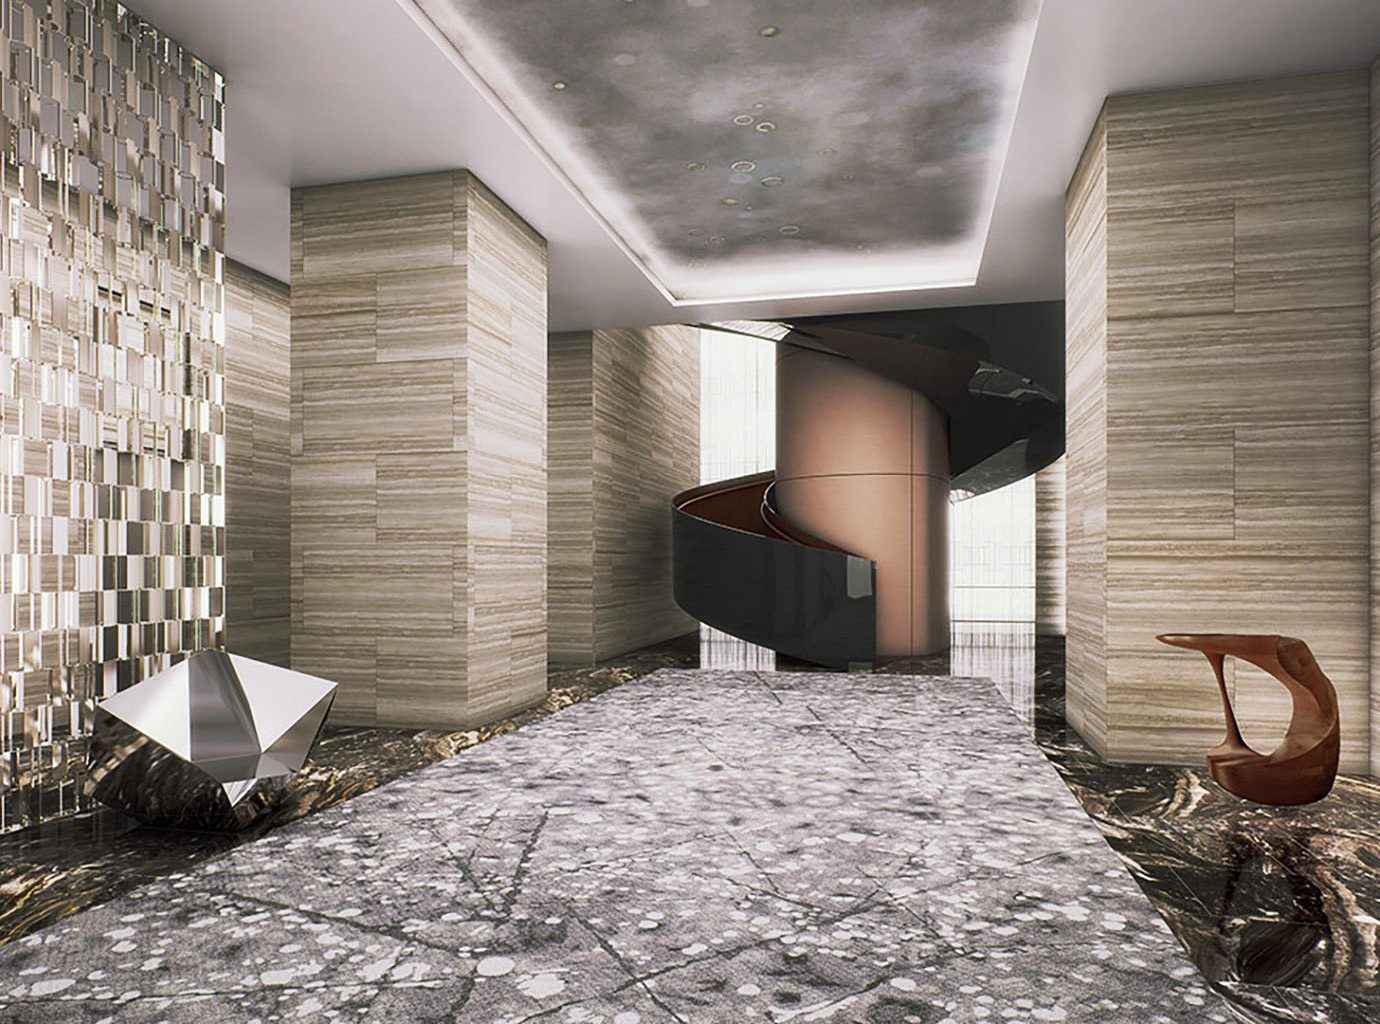 Hotels NYC indoor house room wall floor Architecture home interior design estate wood living room flooring Lobby Design hall mansion window covering furniture